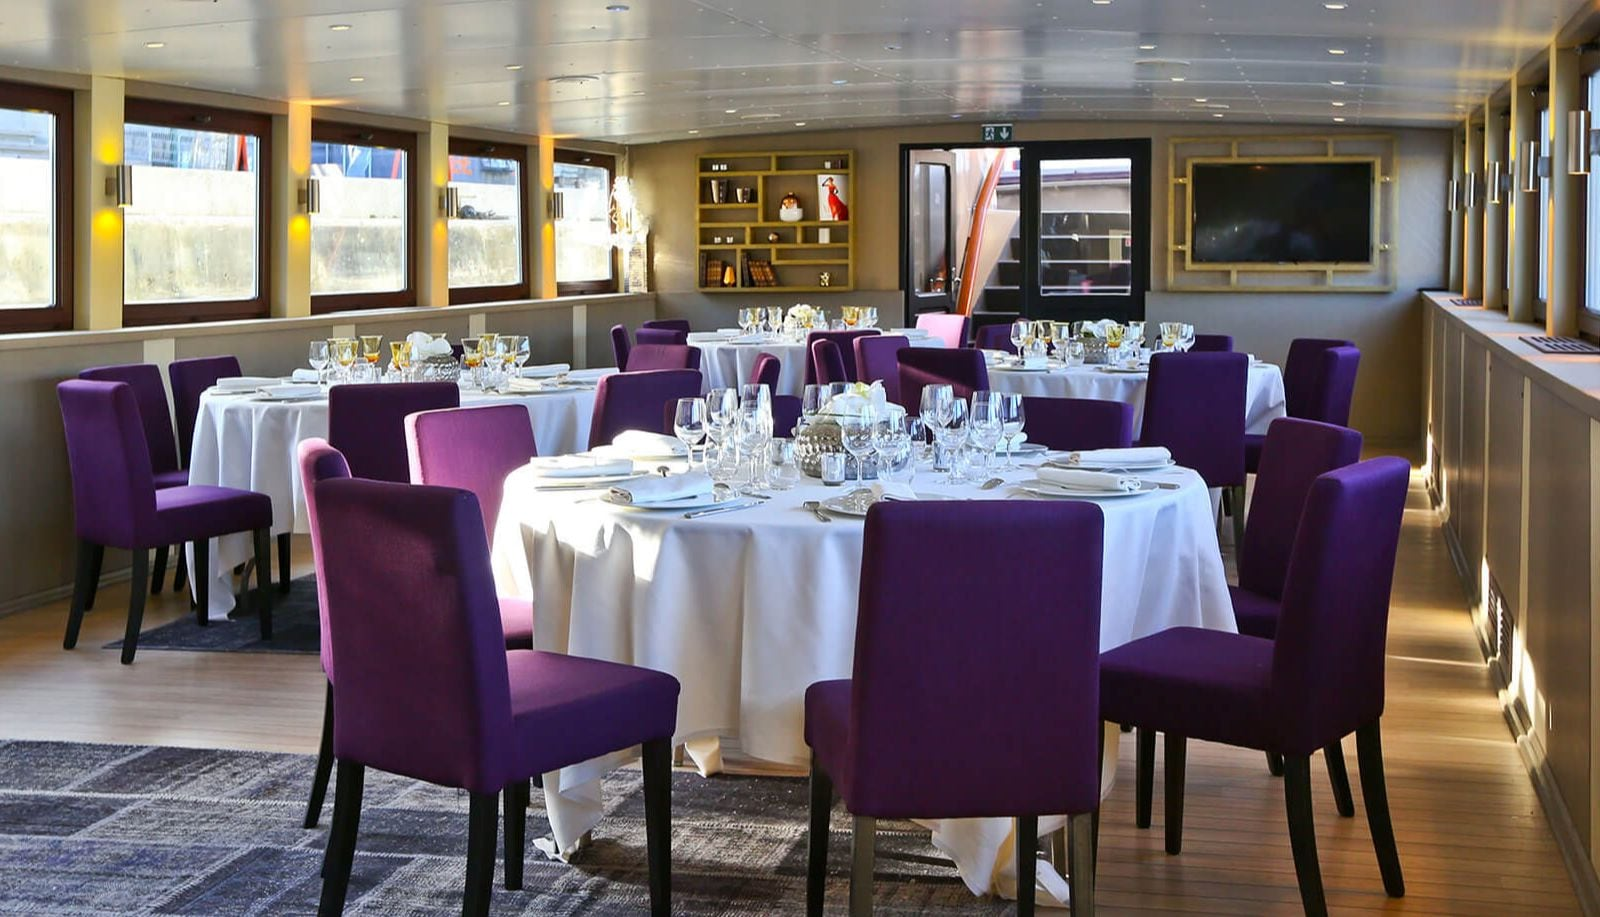 Dinner on L'instant by Le Paris boat